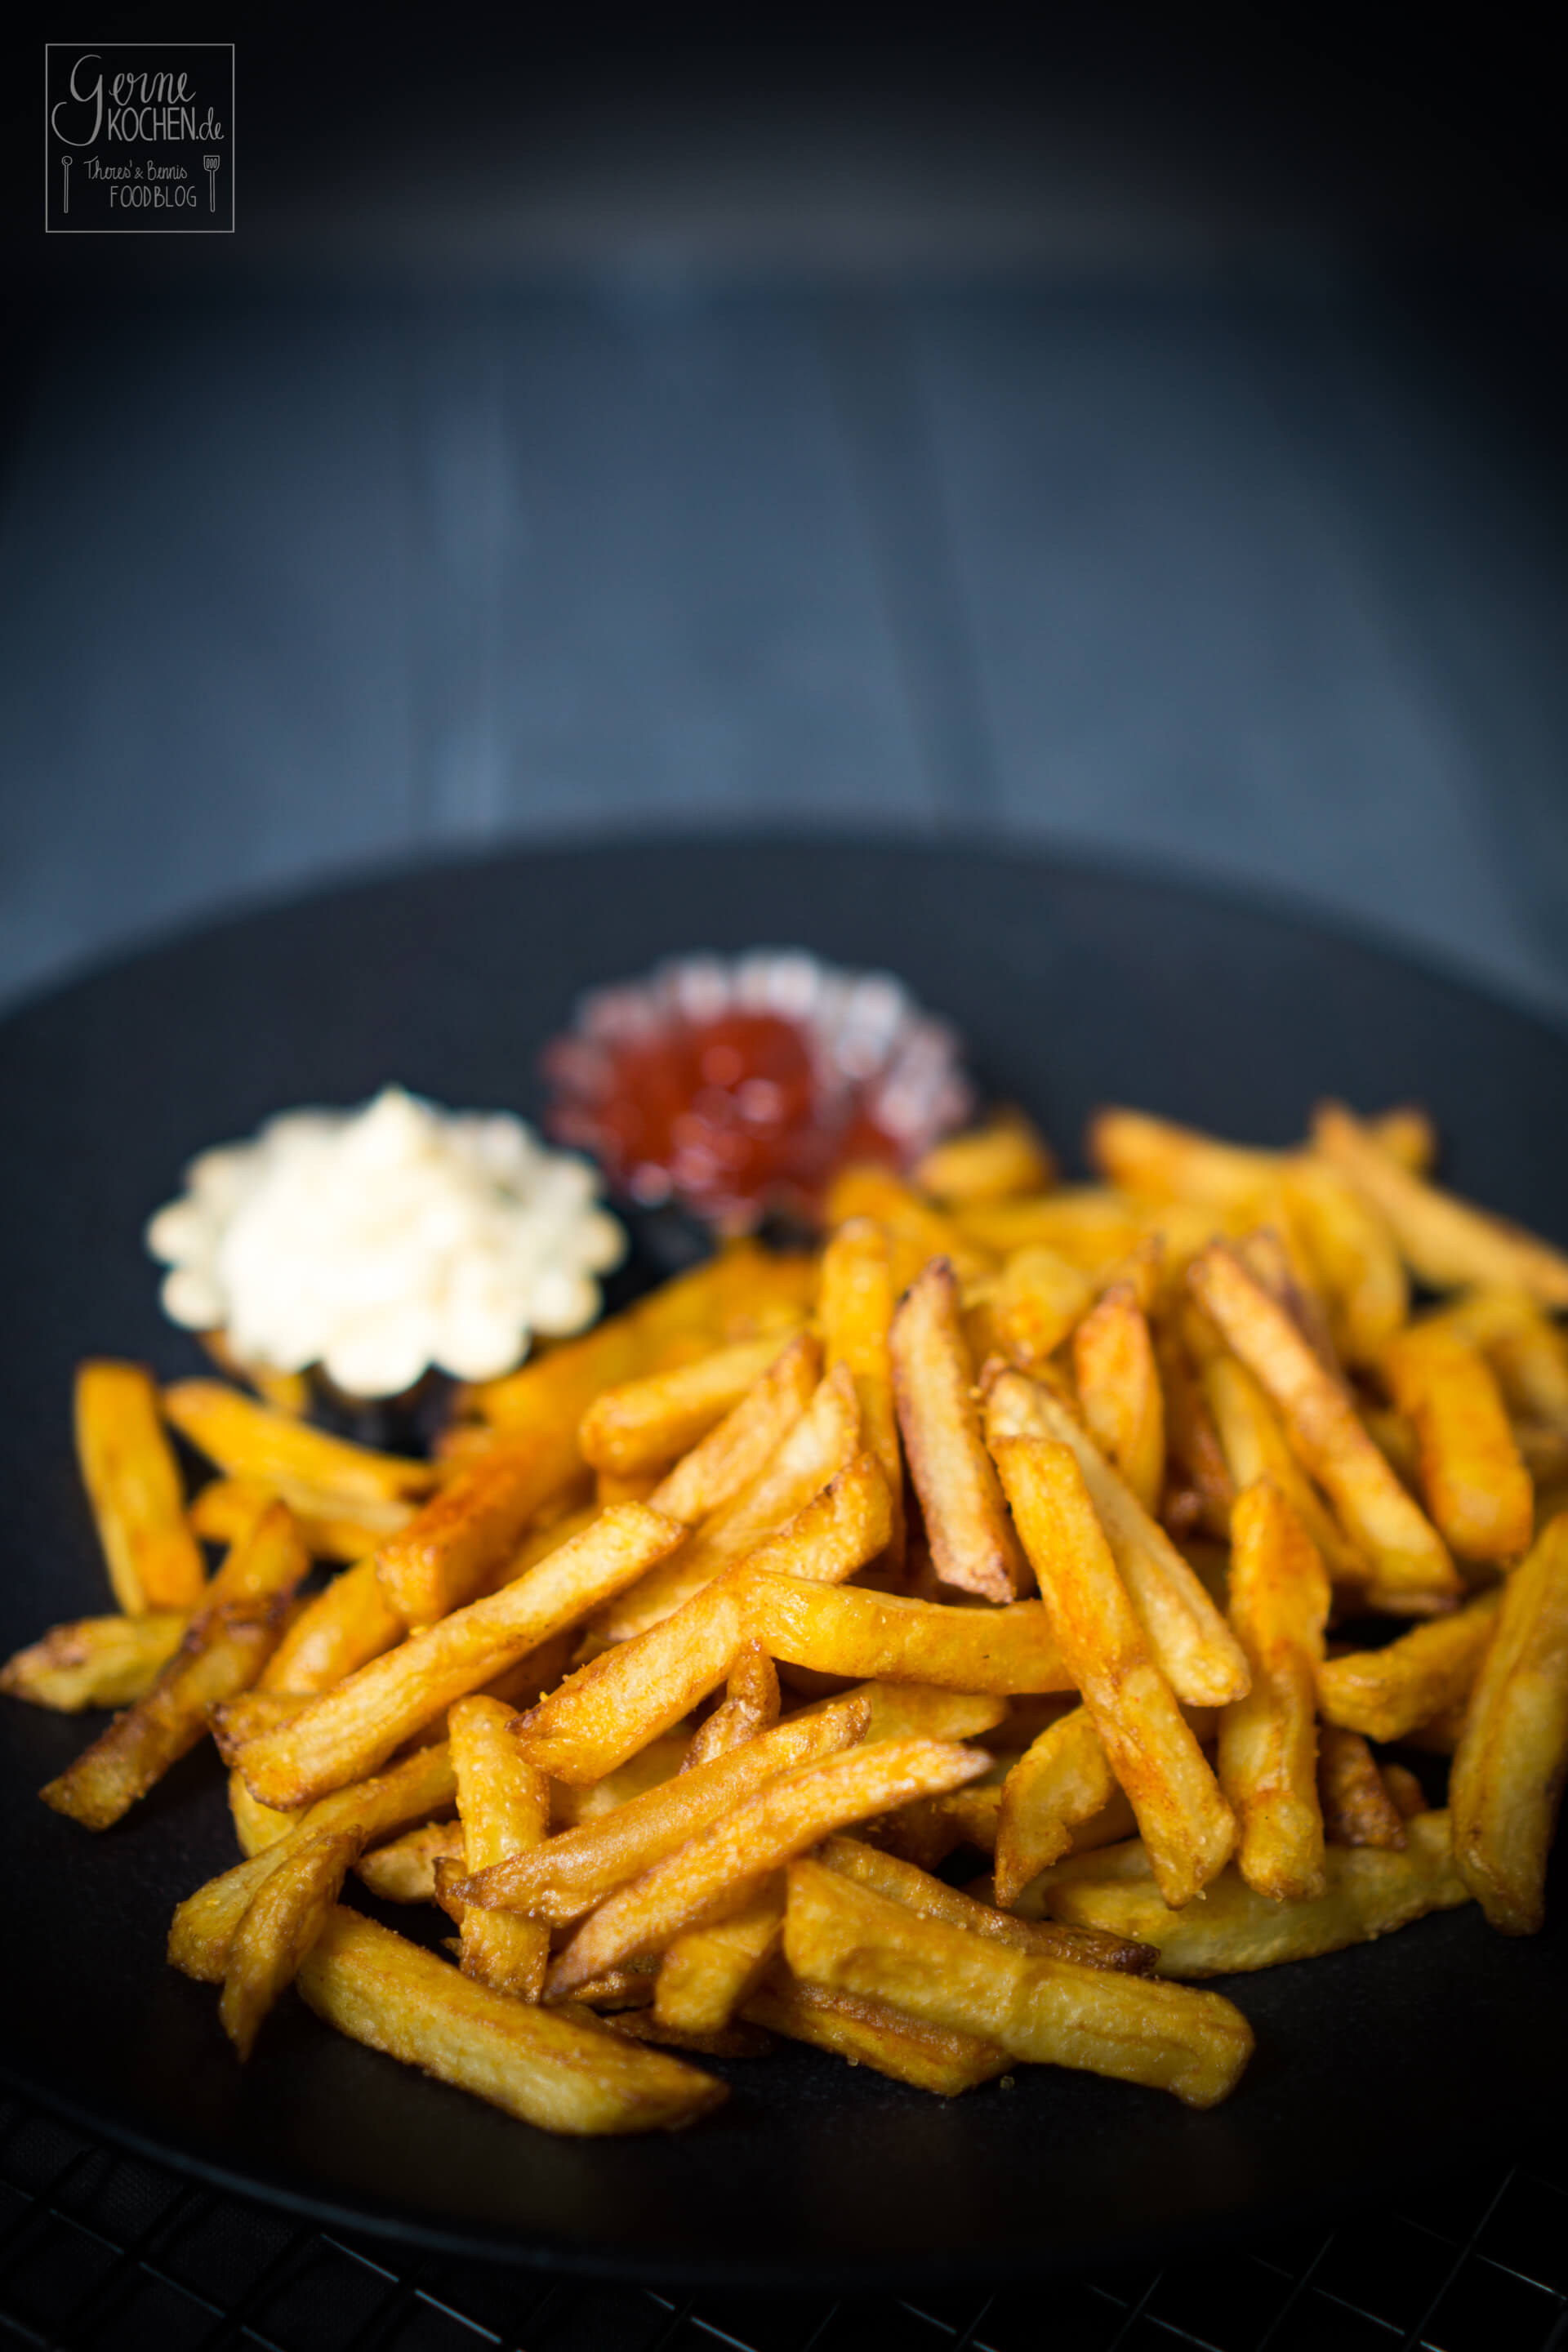 selbstgemachte Pommes